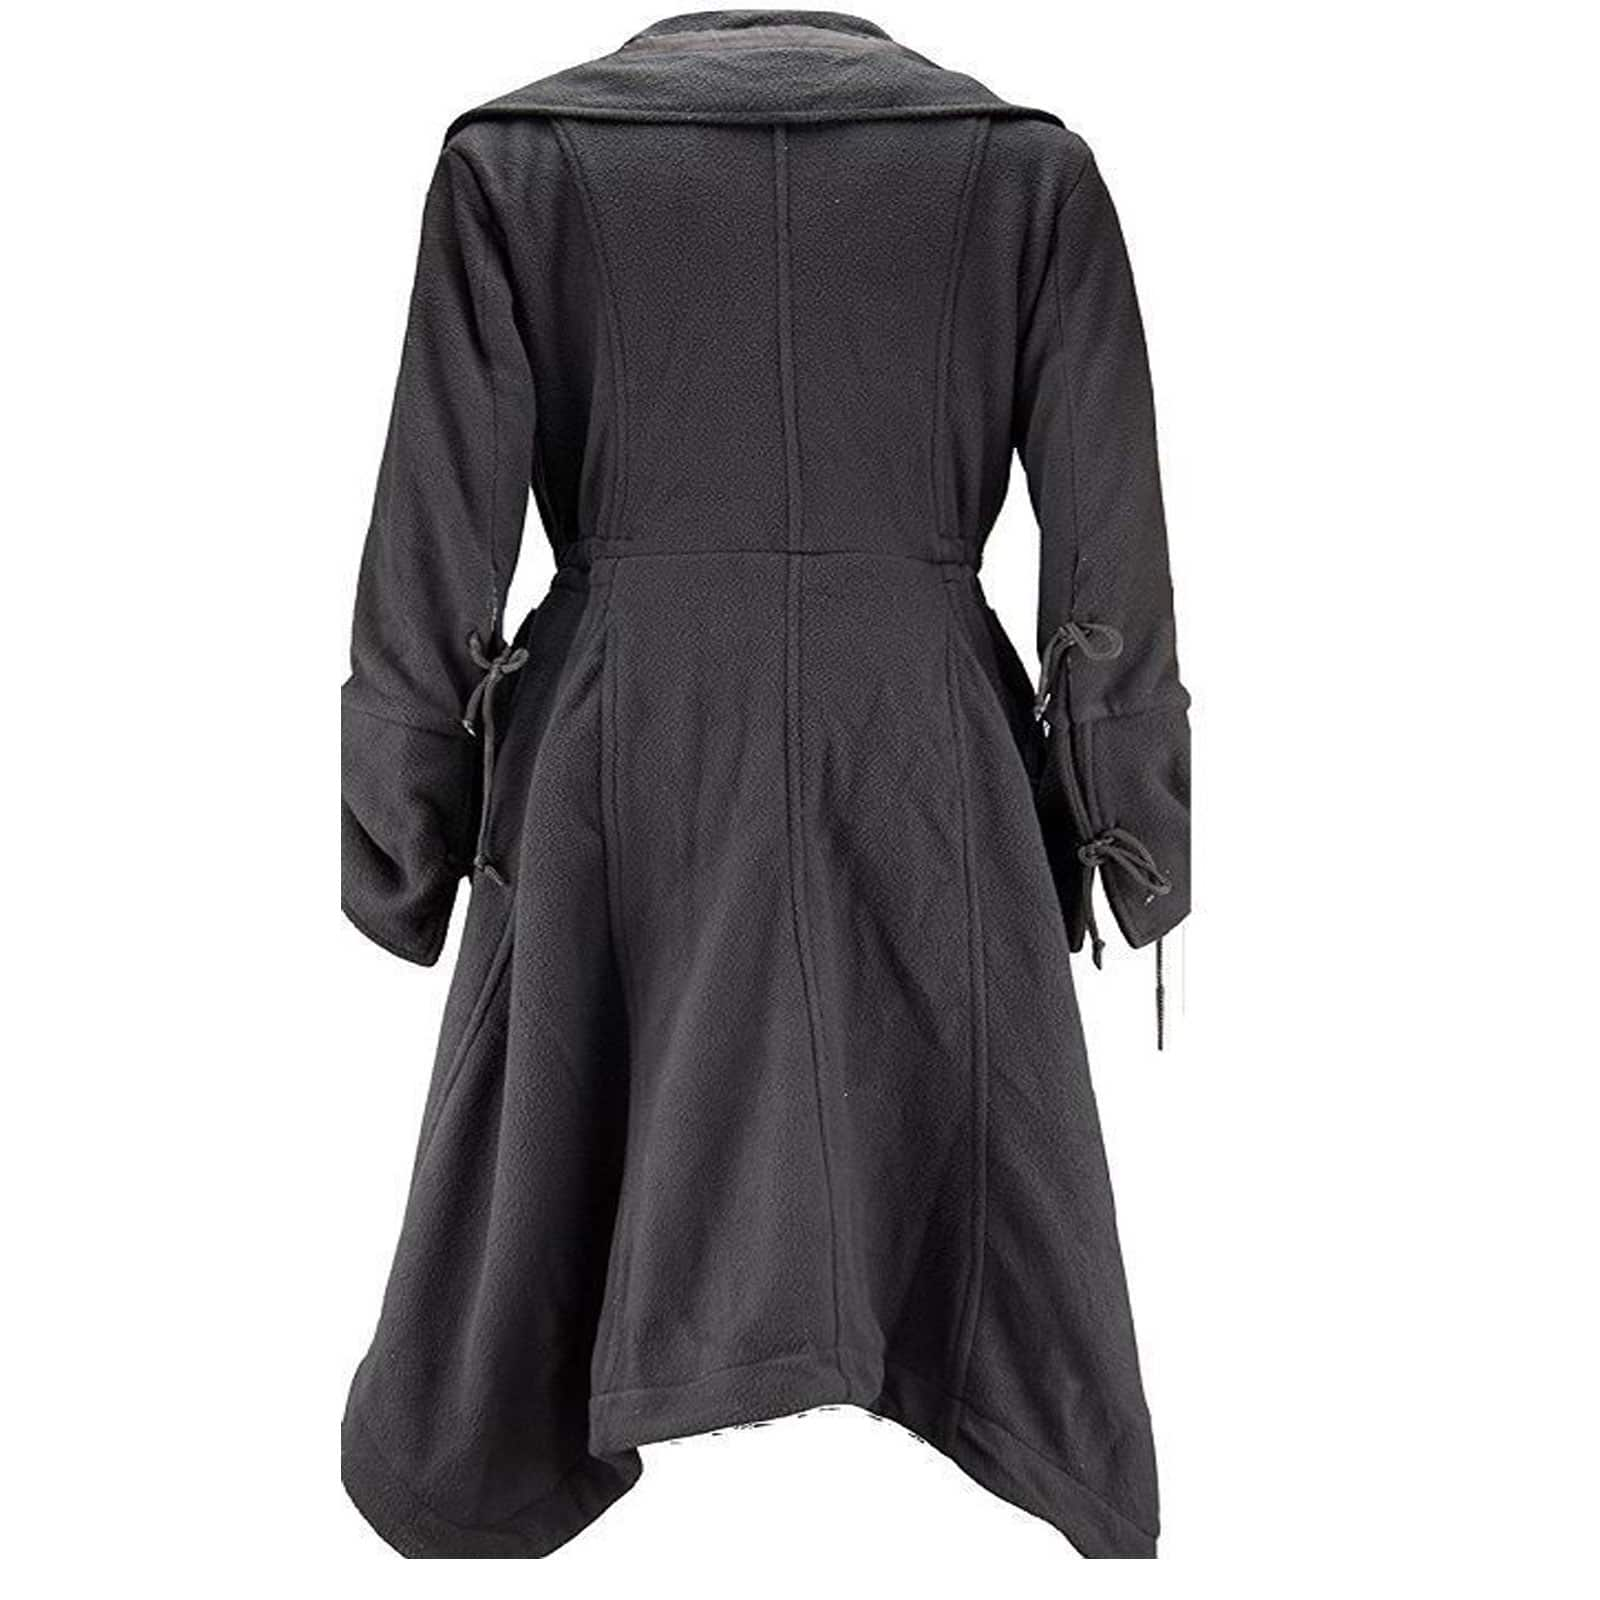 New Poizen Industries Black Fleece Long Angel Coat Jacket Gothic Small